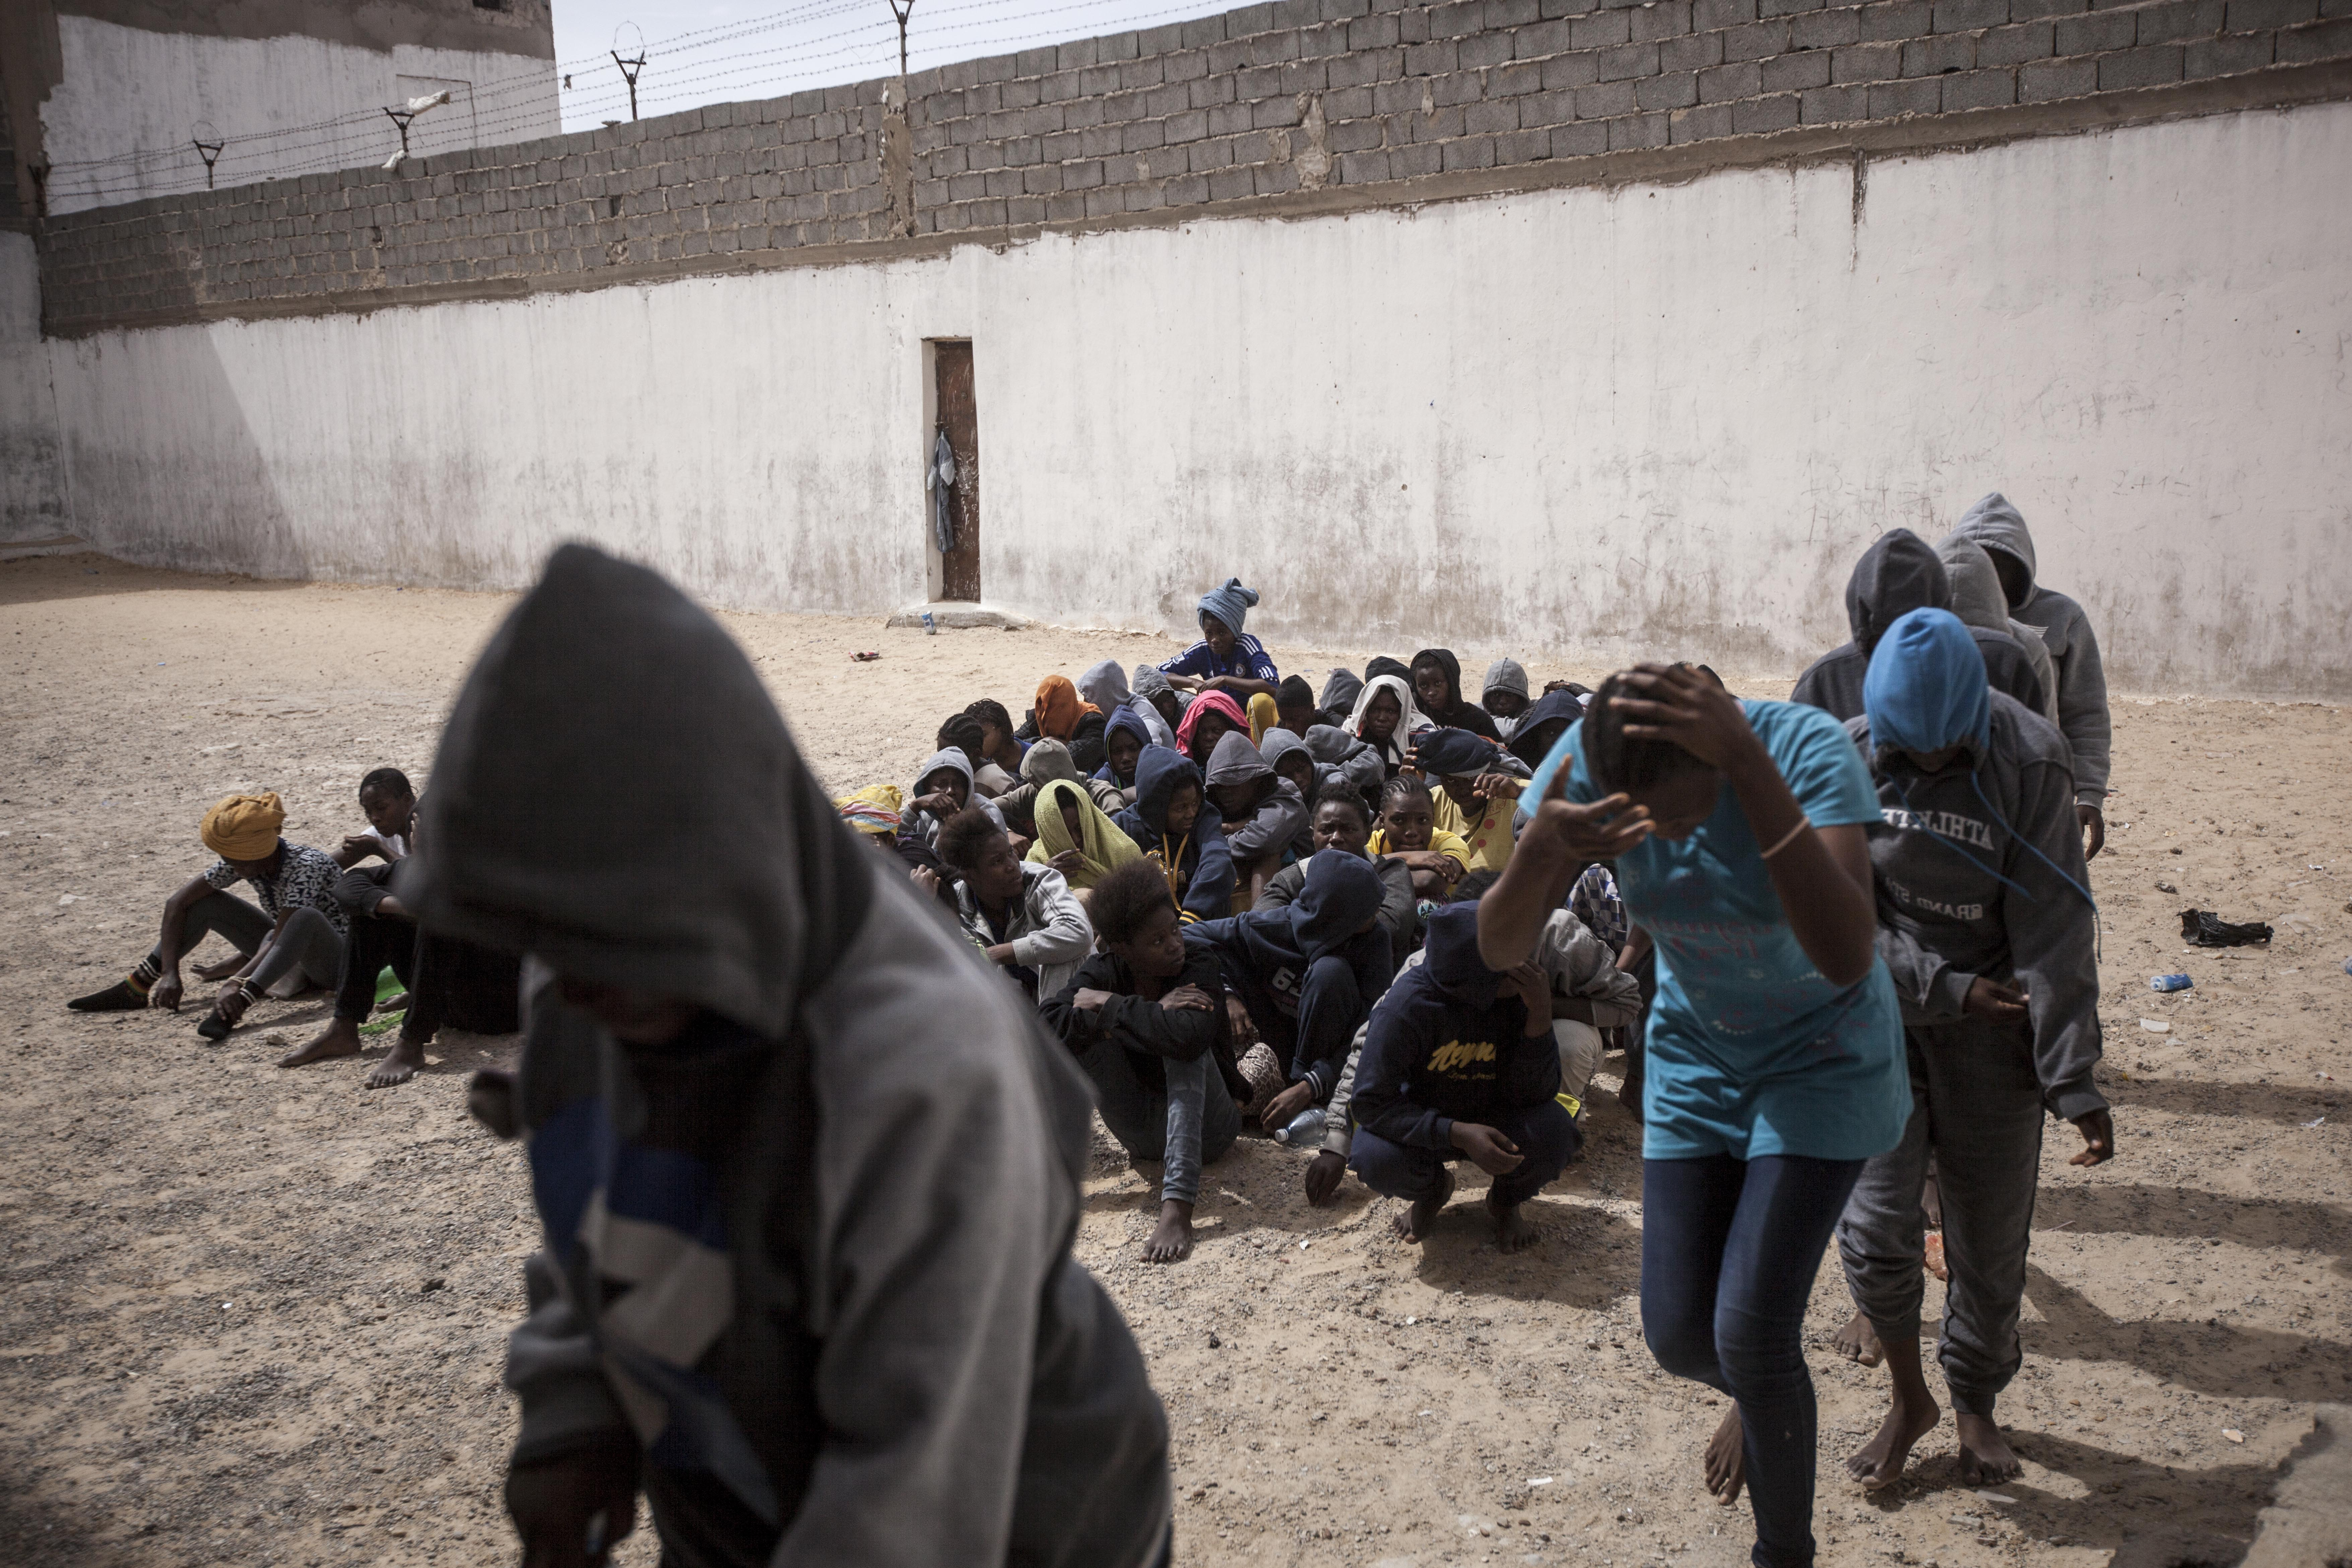 Women refugees and migrants queue in the prison yard as they are loaded onto buses to be transferred to another detention center. They were sold by a militia group ruling the Surman detention camp, Libya.